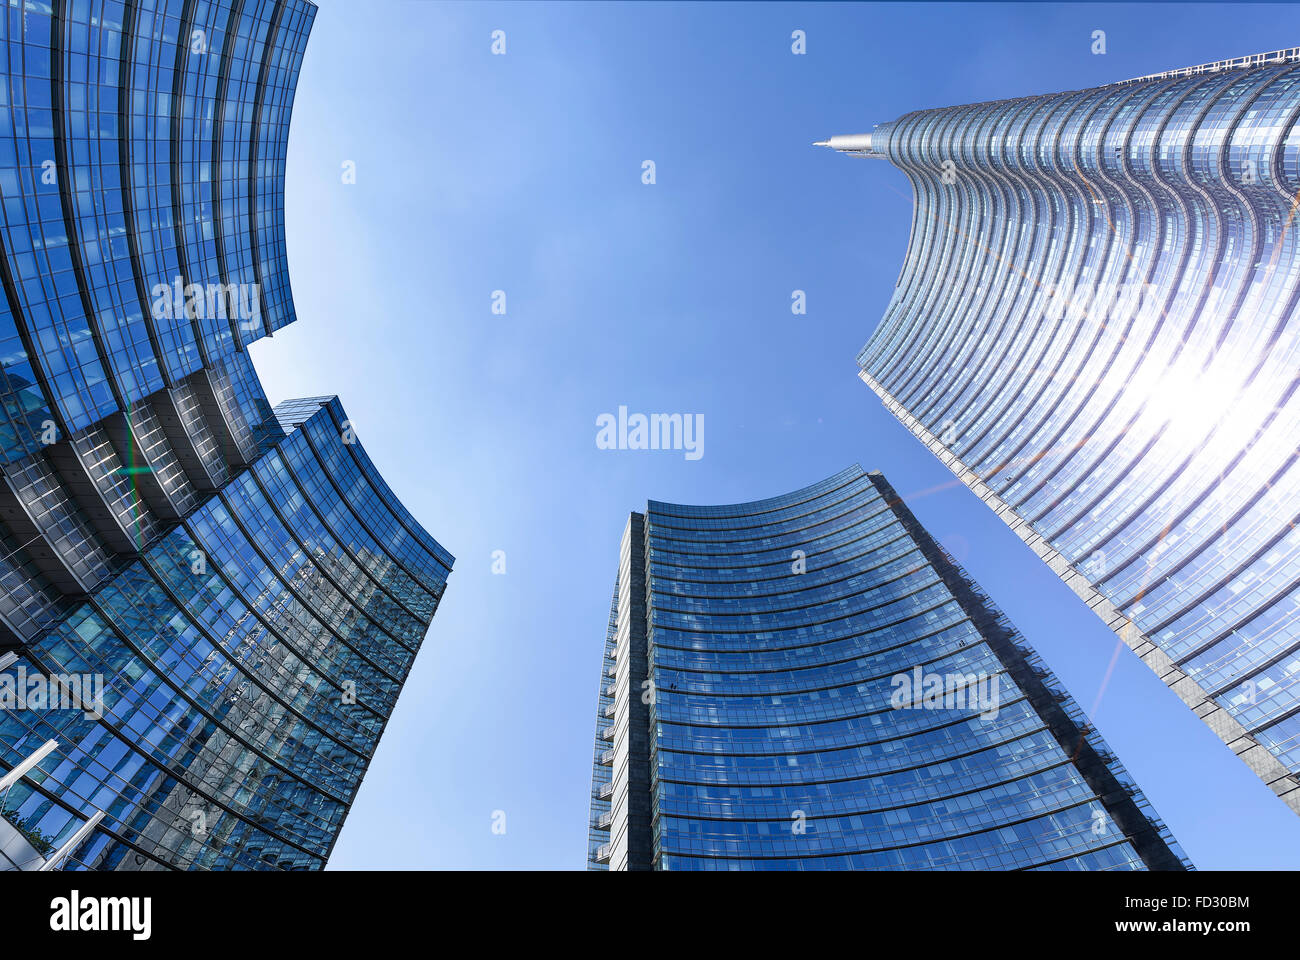 View of the new buildings in the square Gae Aulenti and Corso Como in Porta Nuova area, Milan, Itlaly. Stock Photo